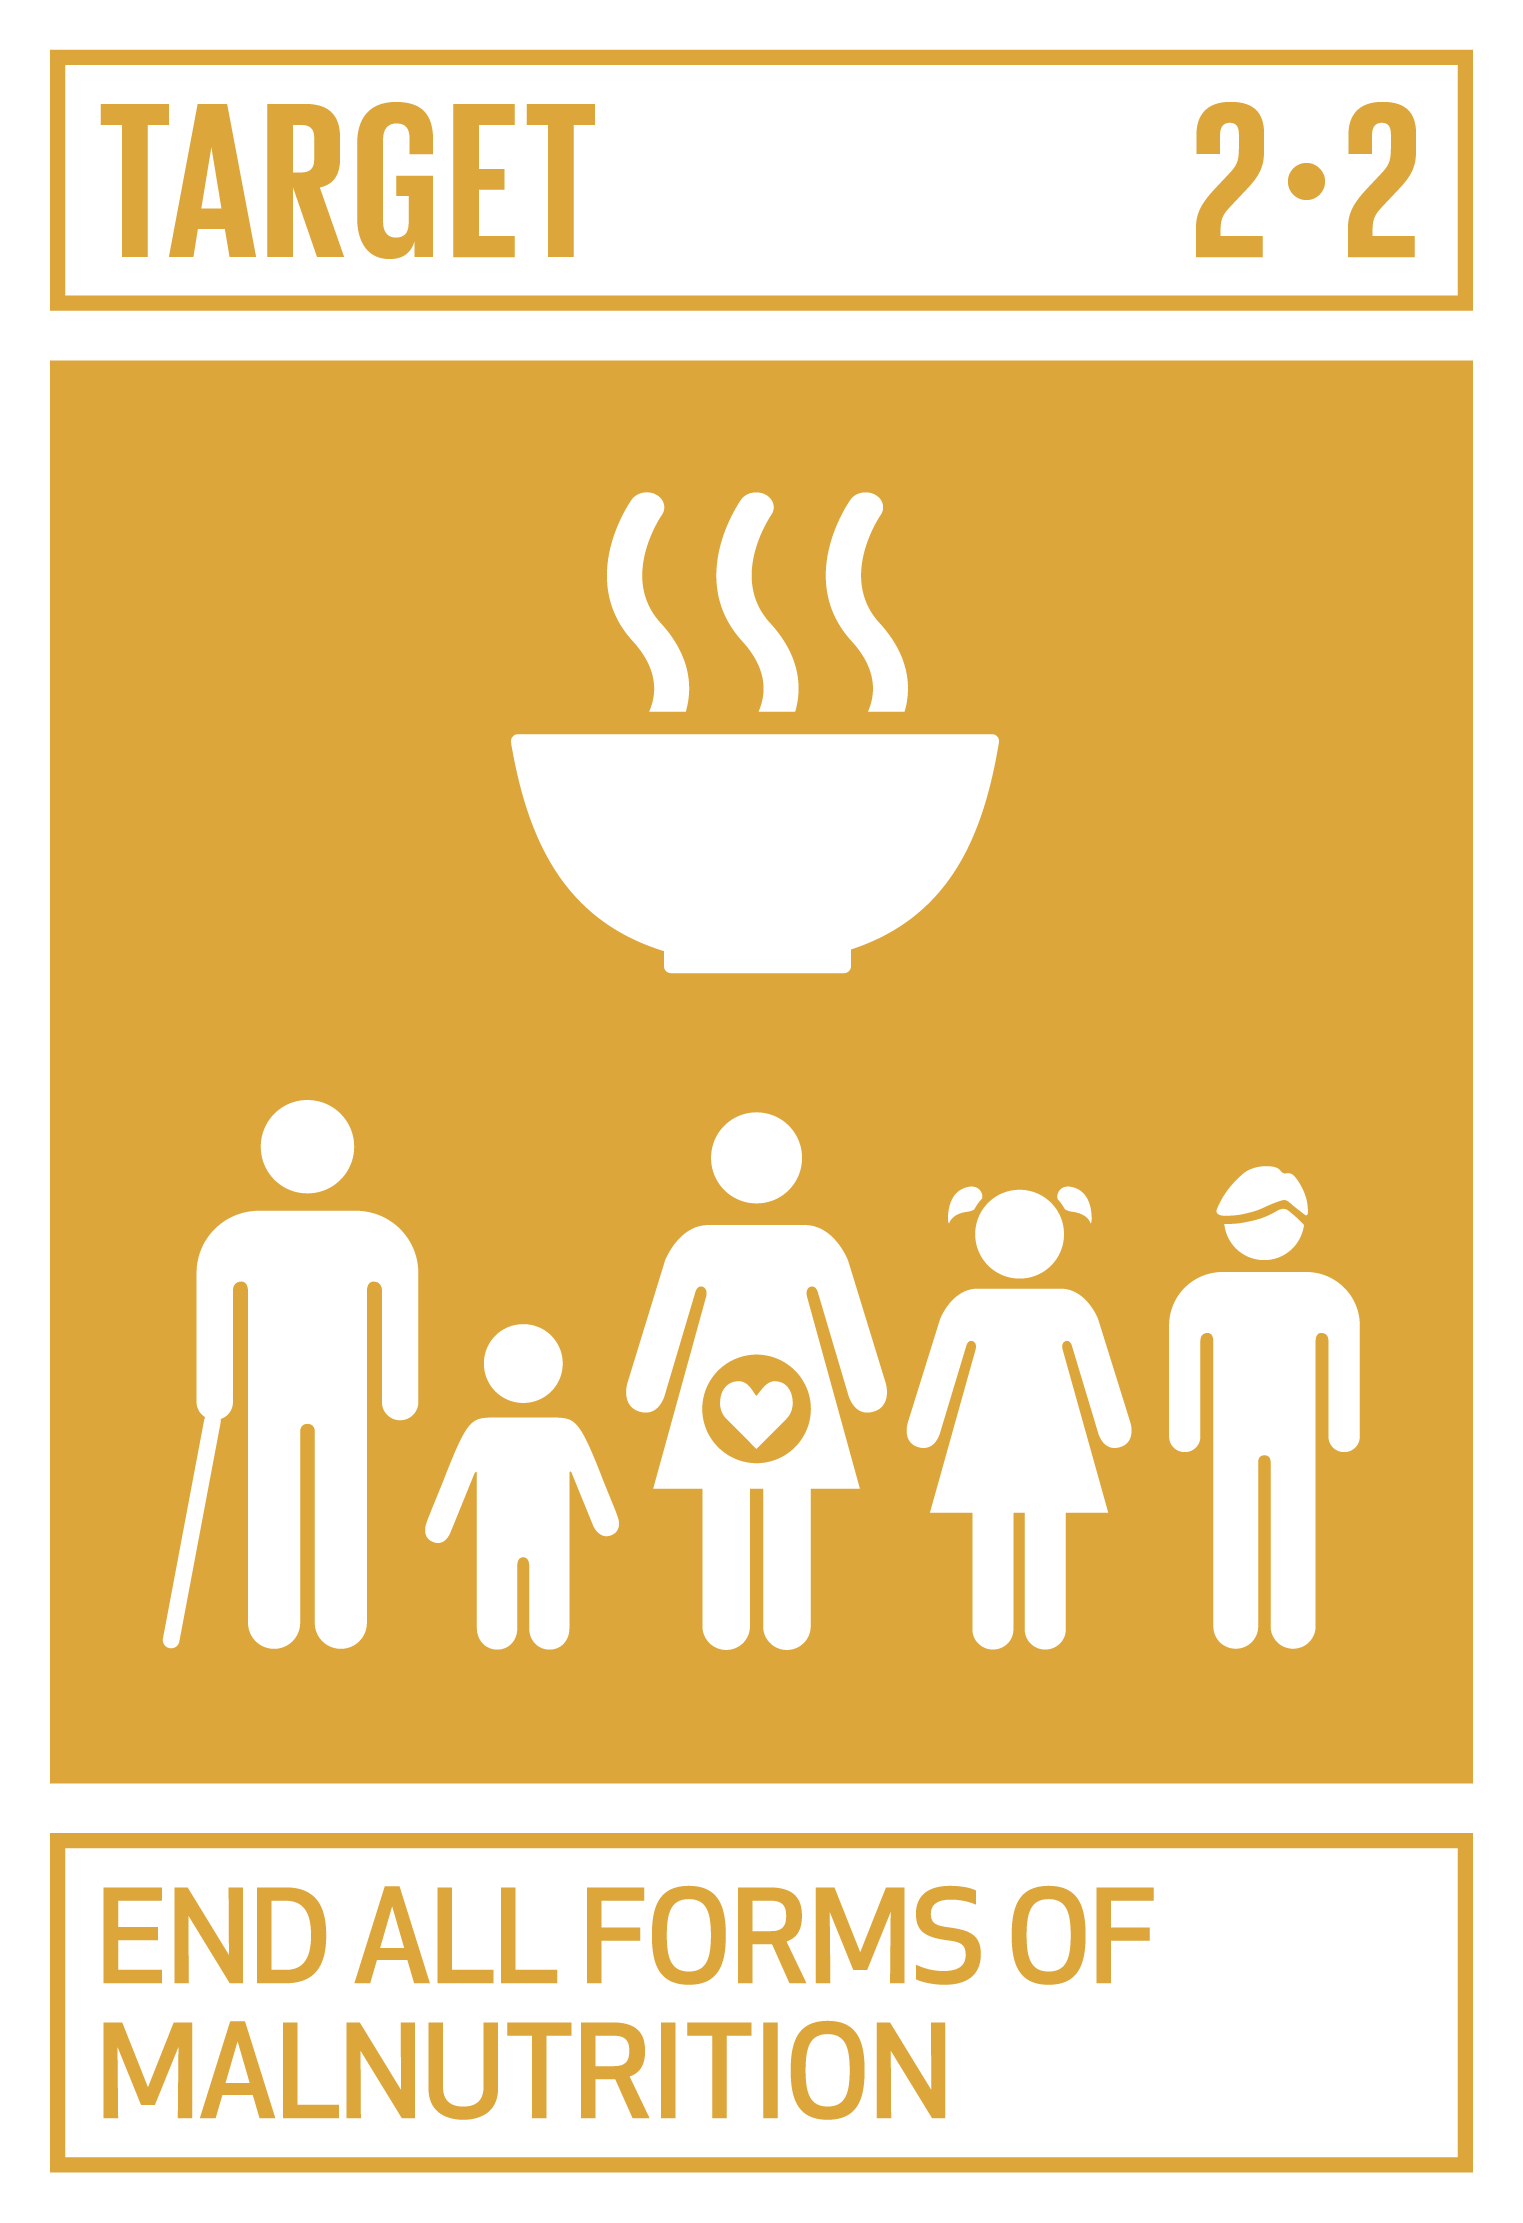 By 2030, end all forms of malnutrition, including achieving, by 2025, the internationally agreed targets on stunting and wasting in children under 5 years of age, and address the nutritional needs of adolescent girls, pregnant and lactating women and older persons.   INDICATORS    2.2.1  Prevalence of stunting (height for age <-2 standard deviation from the median of the World Health Organization (WHO) Child Growth Standards) among children under 5 years of age   2.2.2  Prevalence of malnutrition (weight for height >+2 or <-2 standard deviation from the median of the WHO Child Growth Standards) among children under 5 years of age, by type (wasting and overweight)